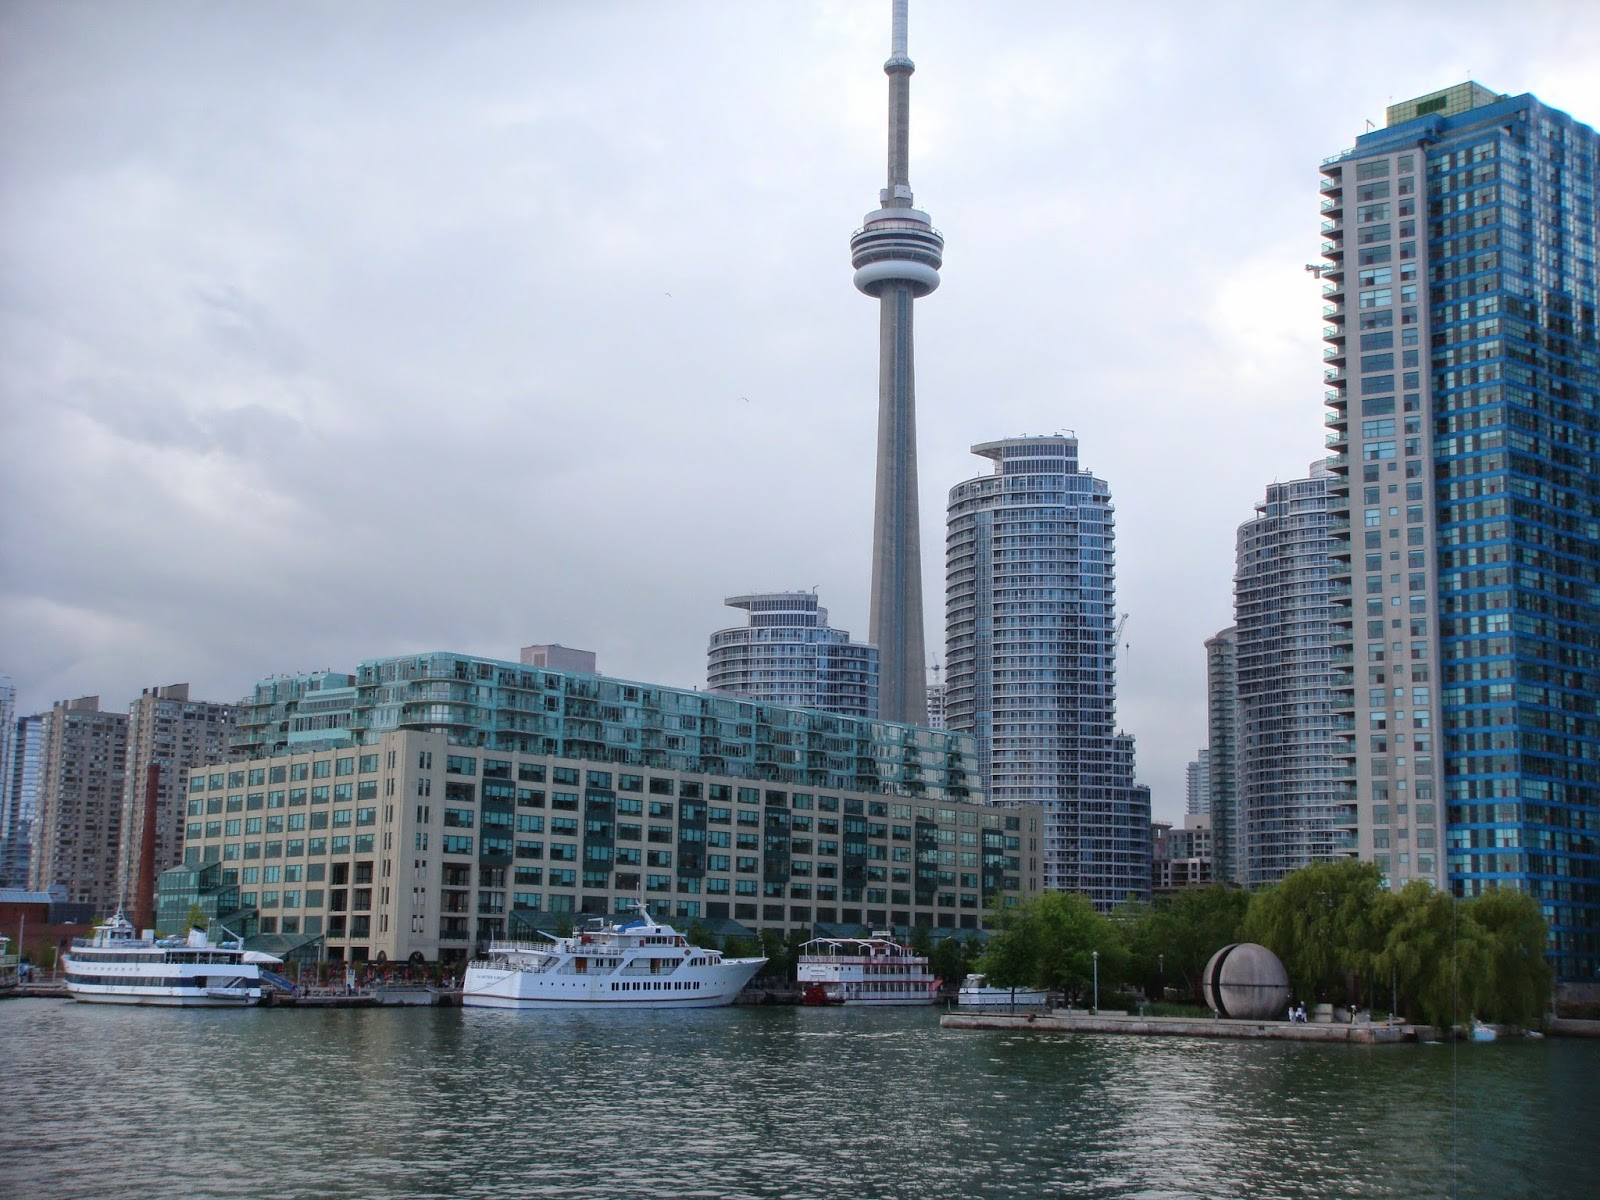 Toronto Harbourfront Condos Downtown